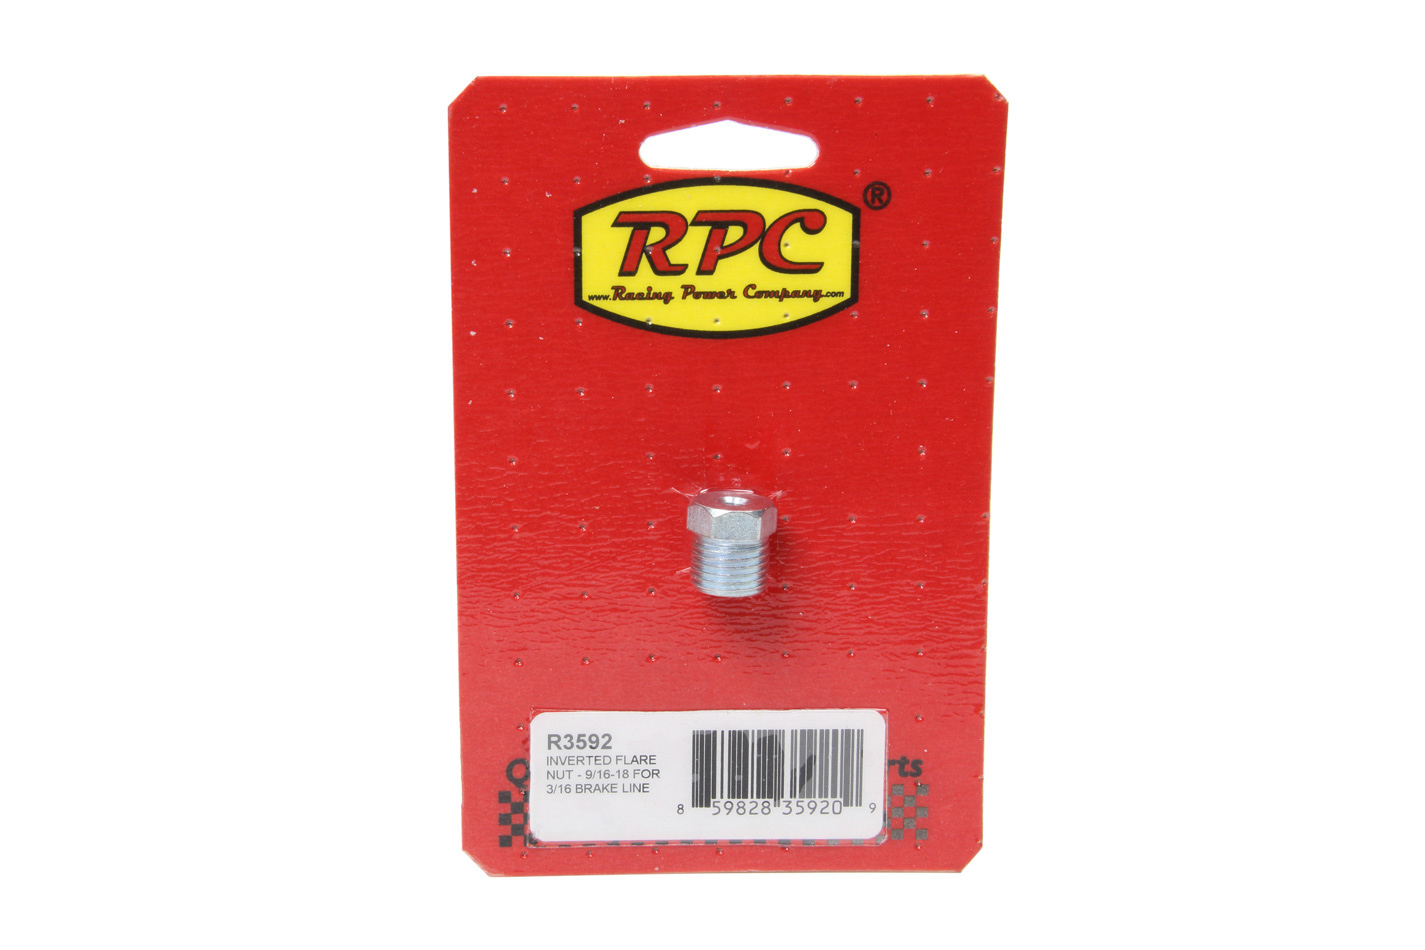 Racing Power Company R3592 Fitting, Flare Nut, 9/16-18 in Inverted Flare Male, Steel, Zinc Oxide, 3/16 in Hardline, Each